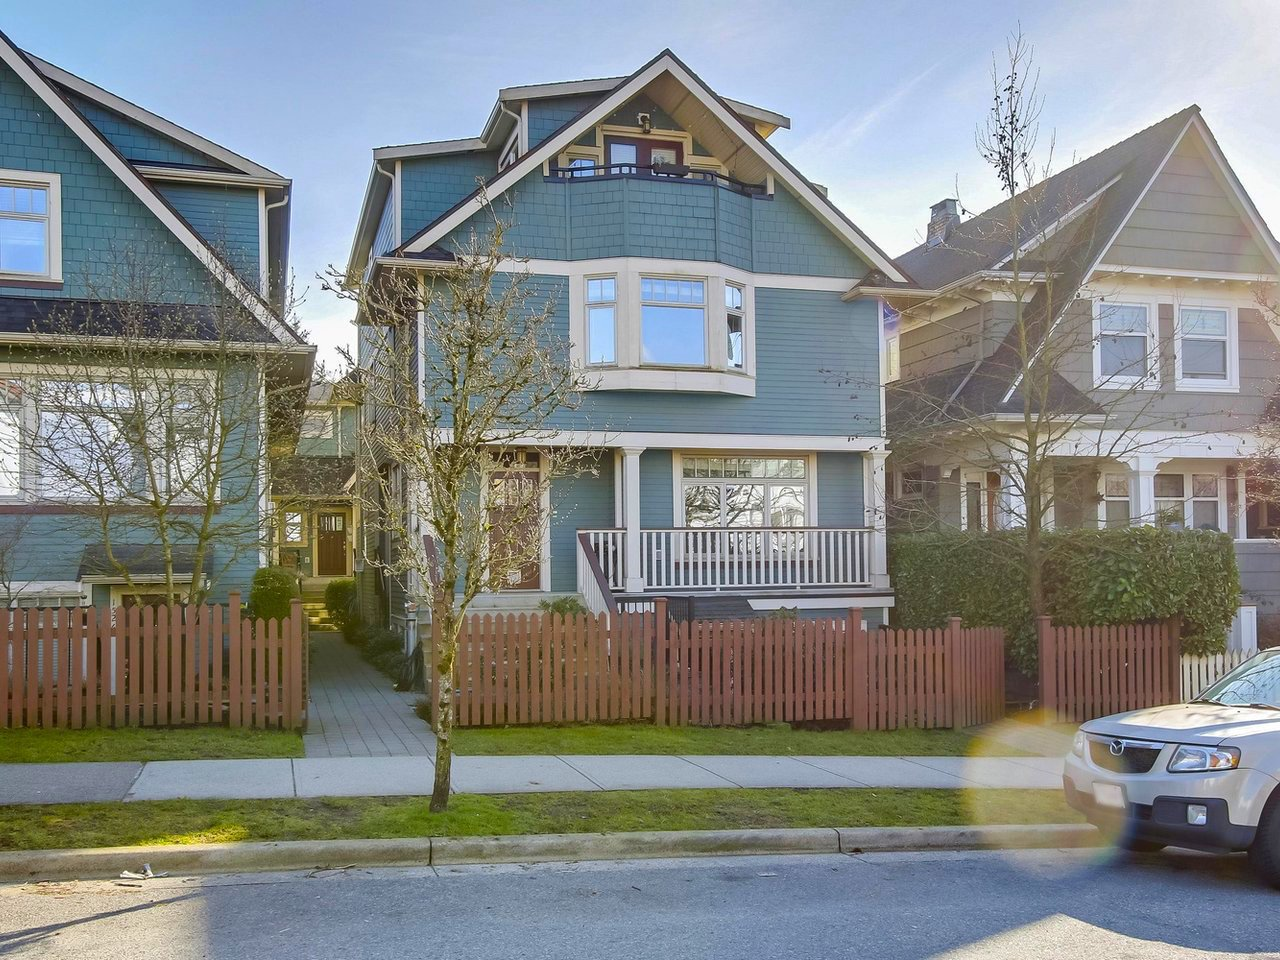 """Main Photo: 1516 GRAVELEY Street in Vancouver: Grandview VE Townhouse for sale in """"GRAVELEY HEIGHTS"""" (Vancouver East)  : MLS®# R2246874"""